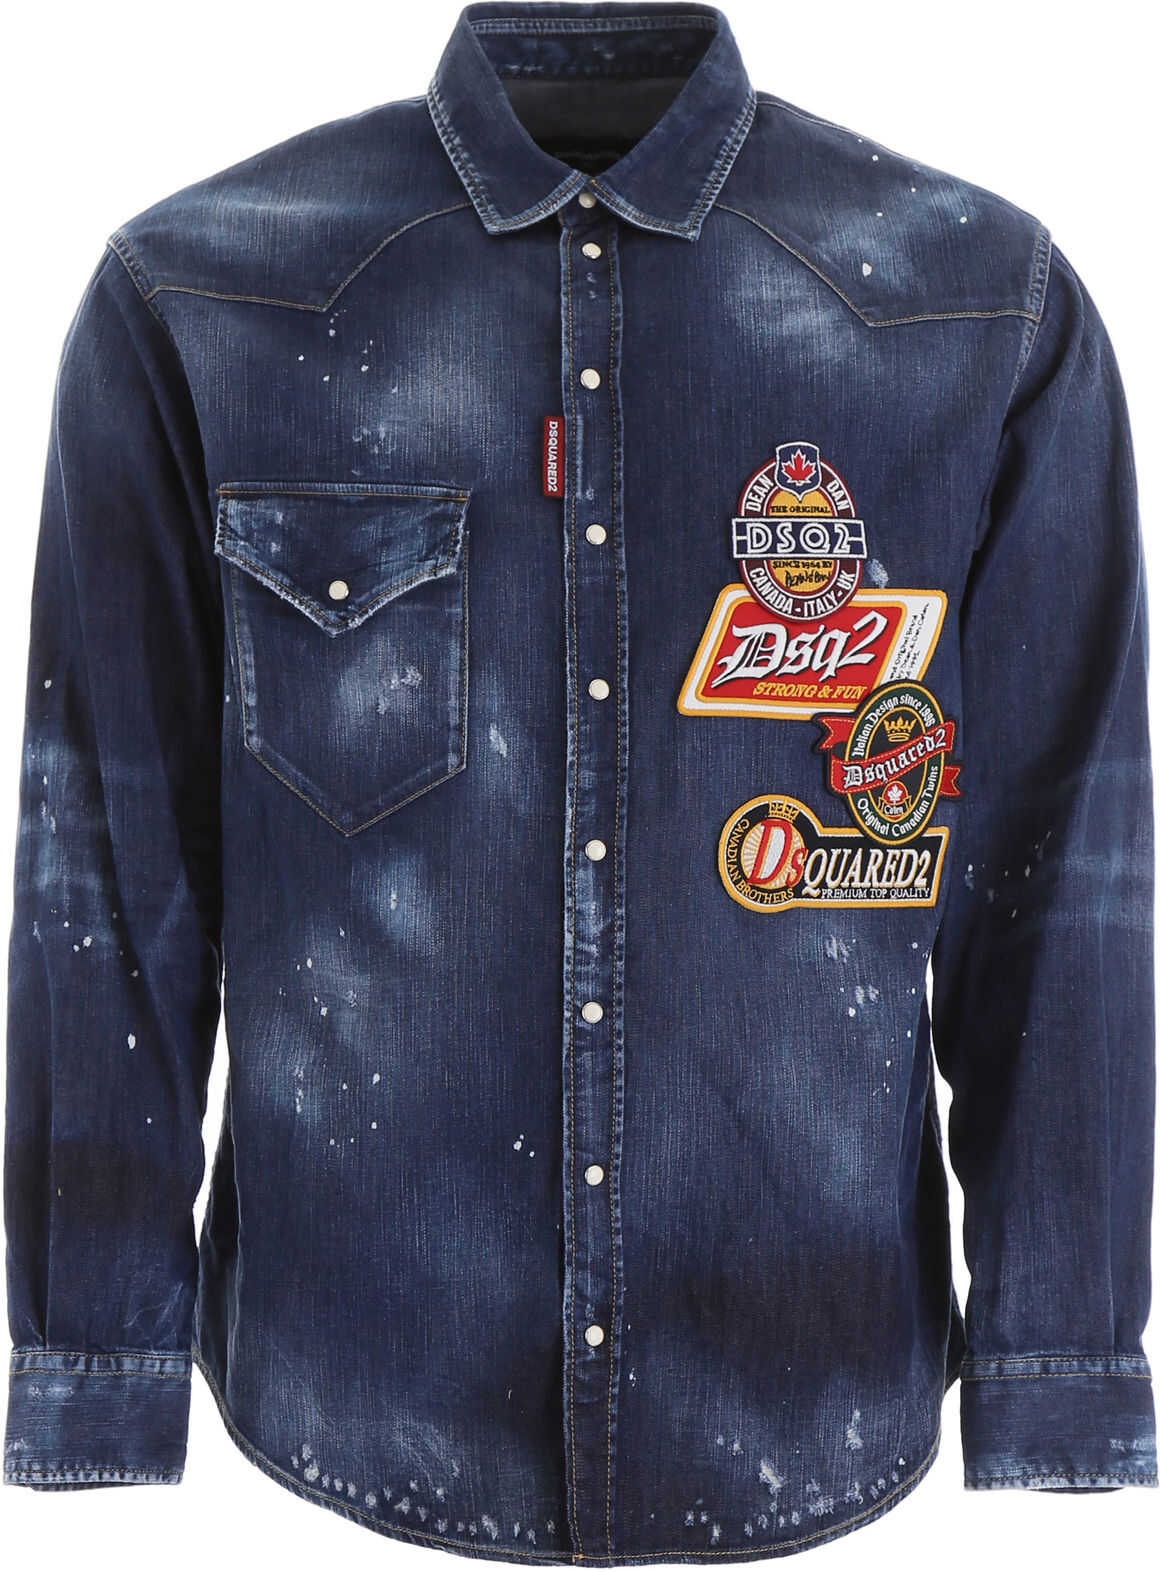 DSQUARED2 Multi-Patch Denim Shirt BLUE